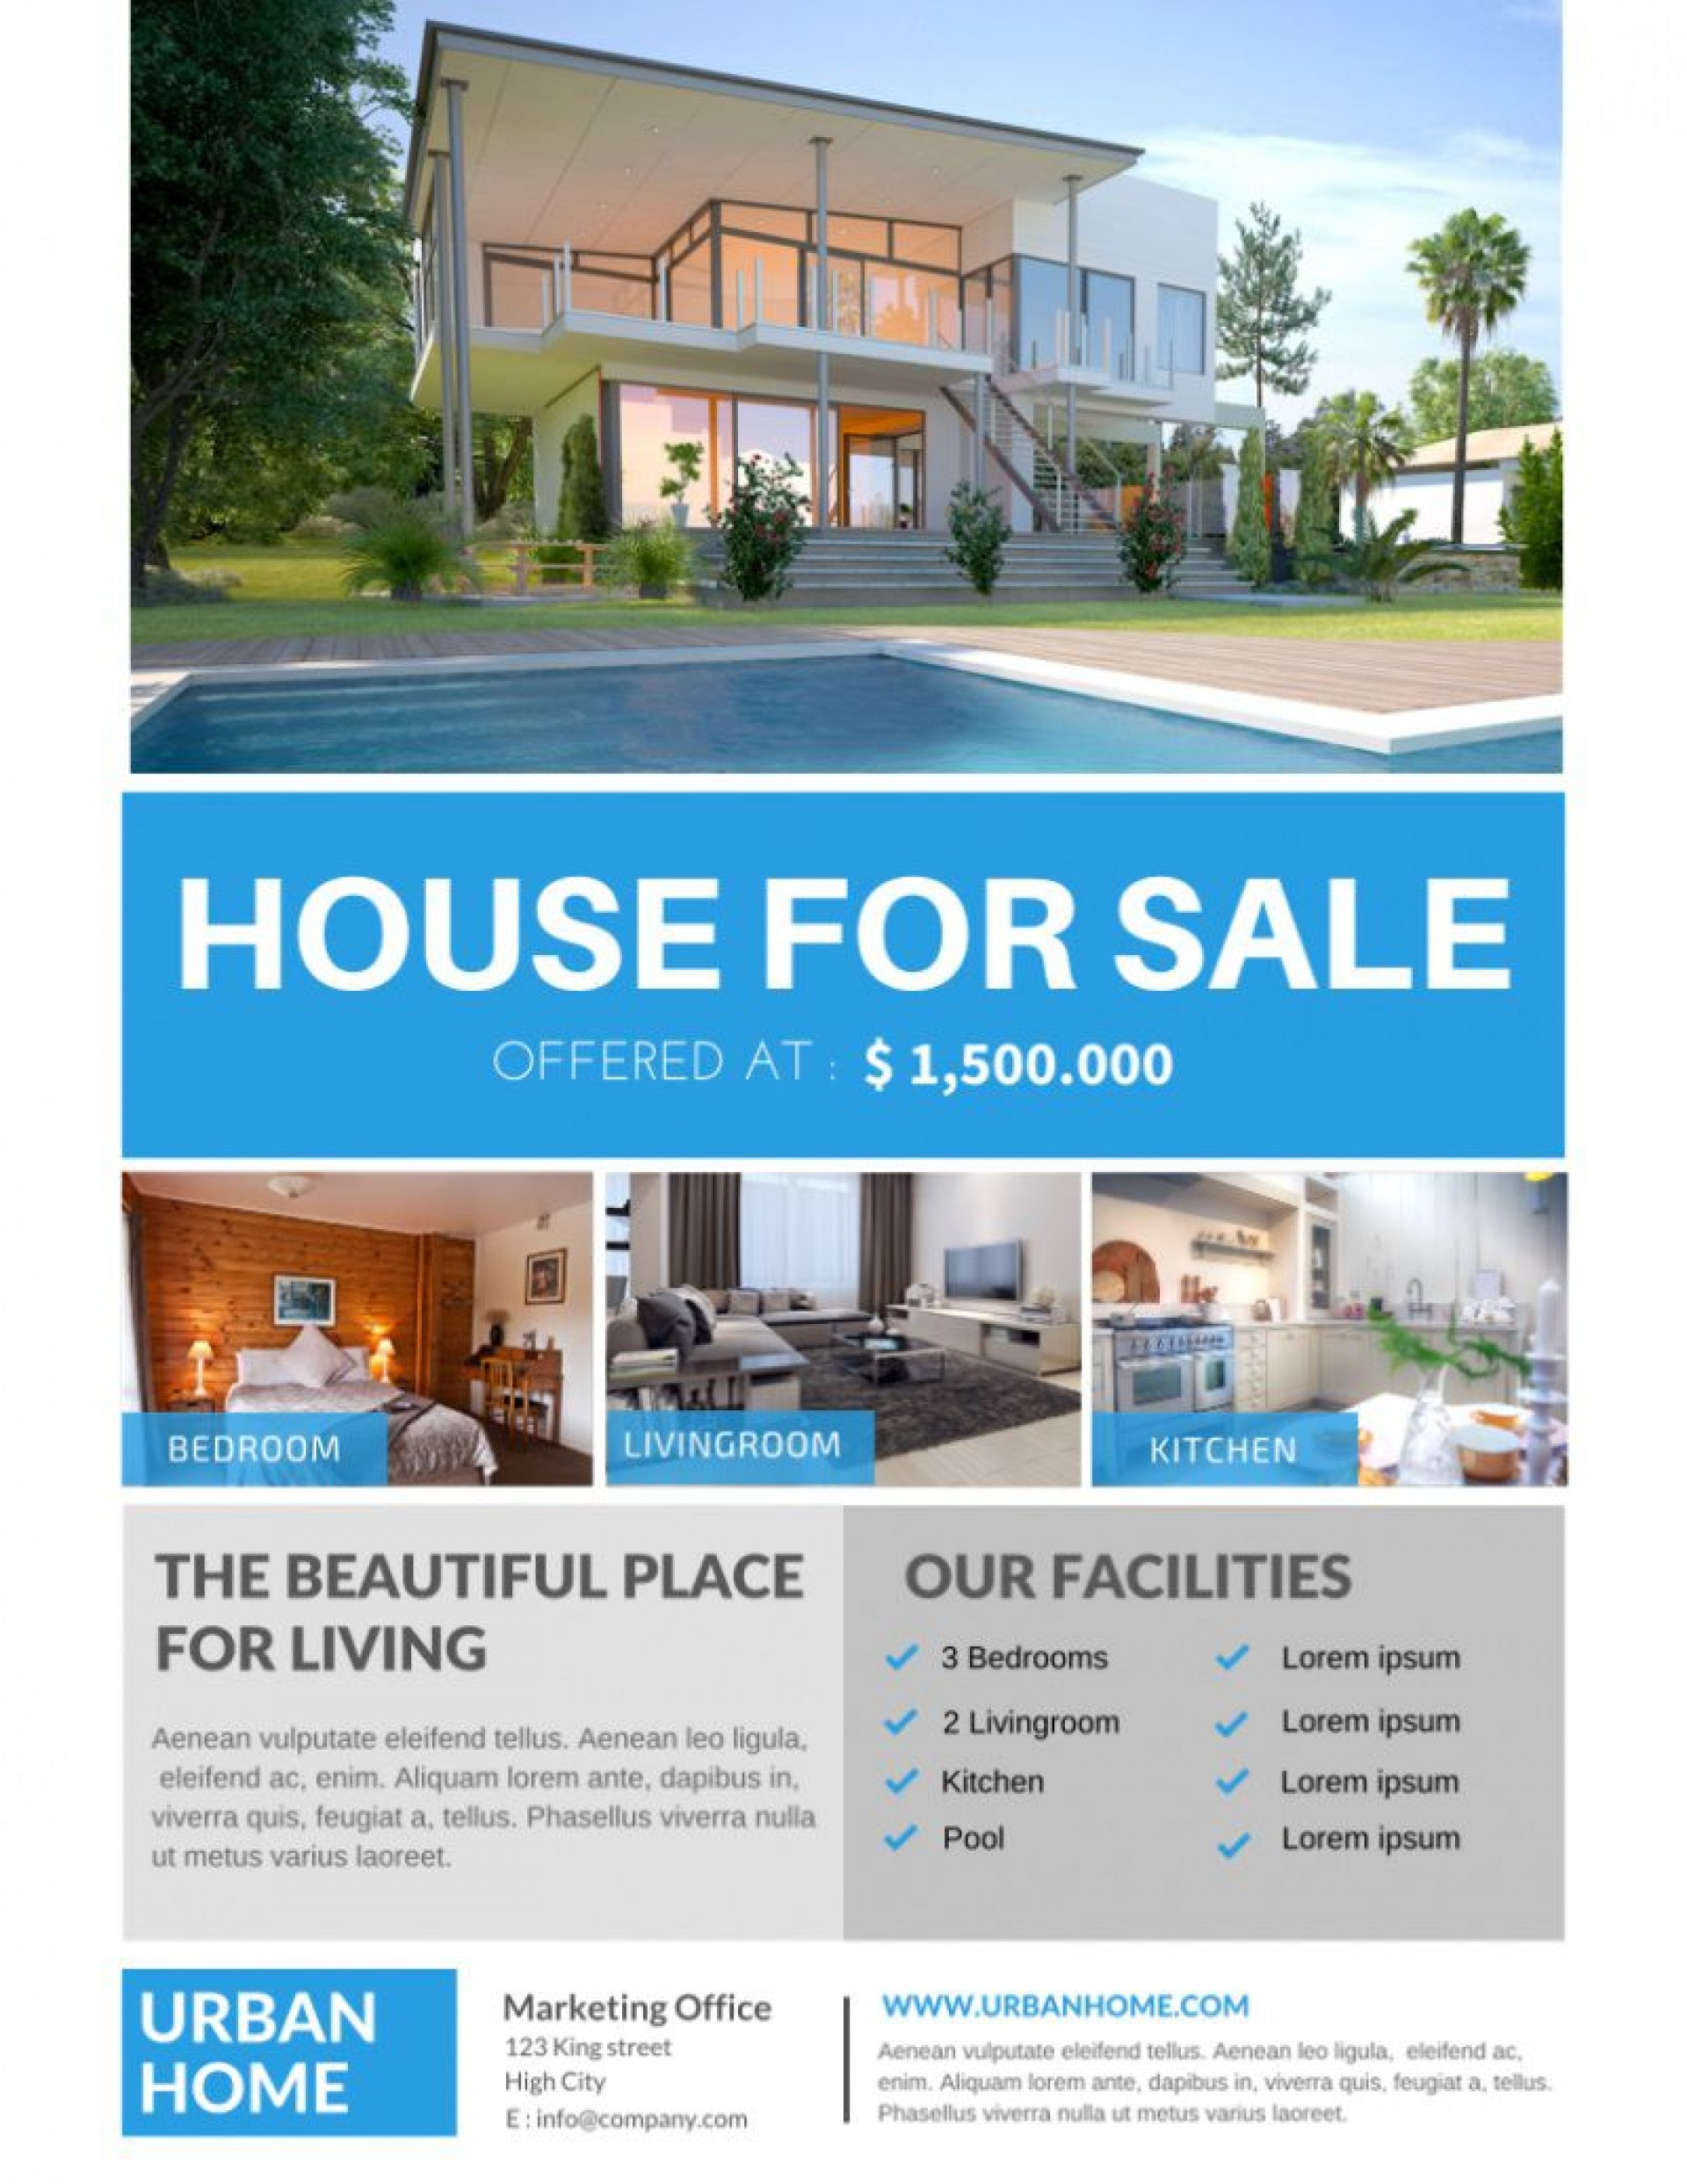 007 Breathtaking House For Sale Flyer Template Inspiration  Free Real Estate Example By Owner1920